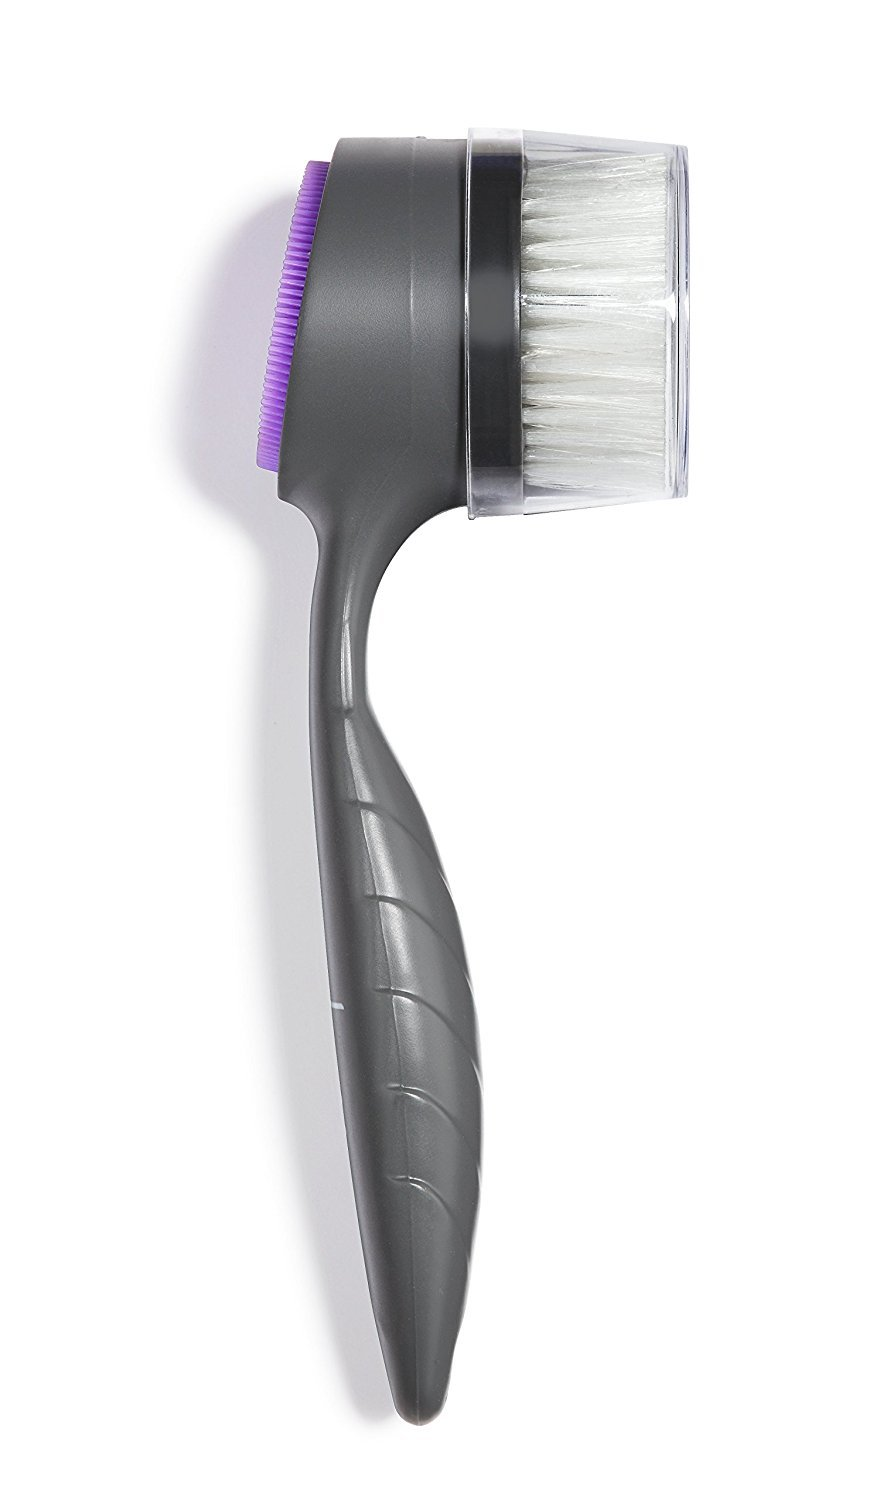 THE PERFECT FACE BRUSH - Patented Dual-Sided Exfoliating, Cleansing, and  Massaging Facial